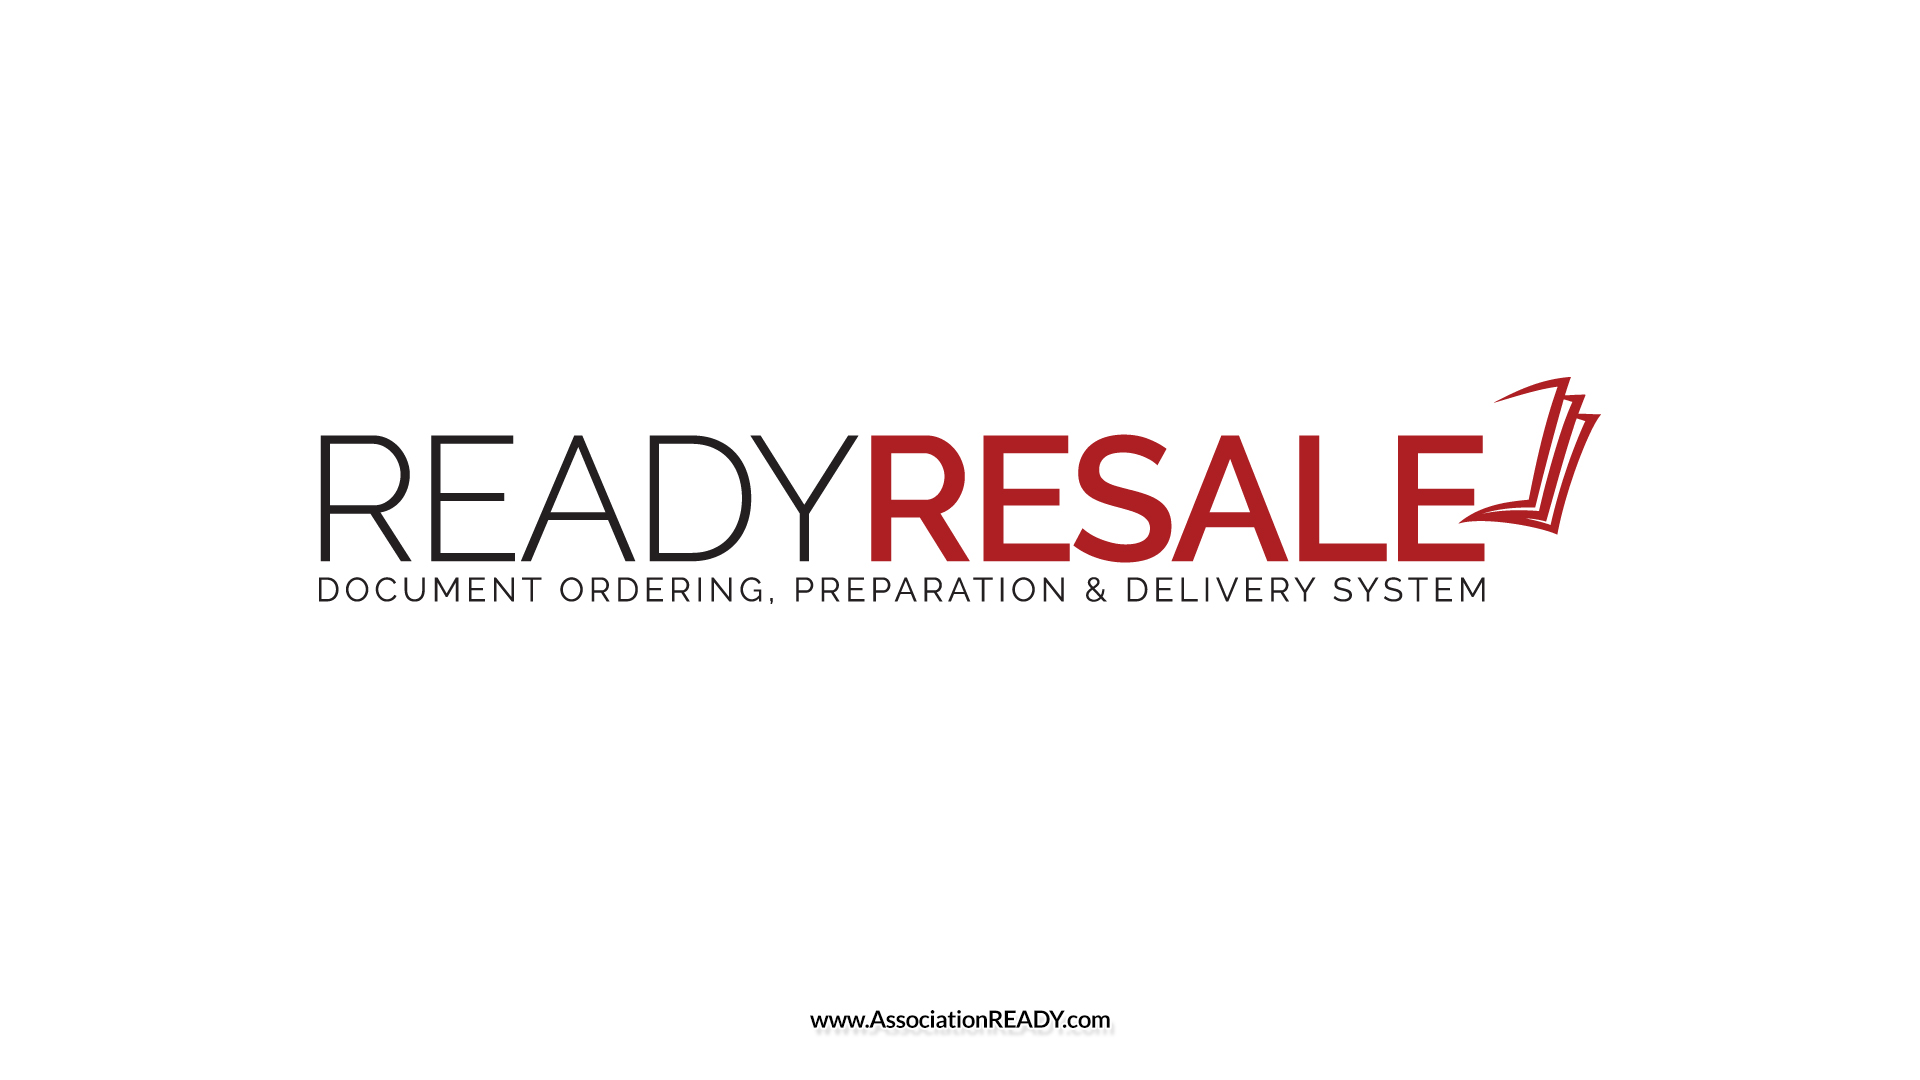 ReadyRESALE White Desktop WallPaper - Click to Download Larger Version